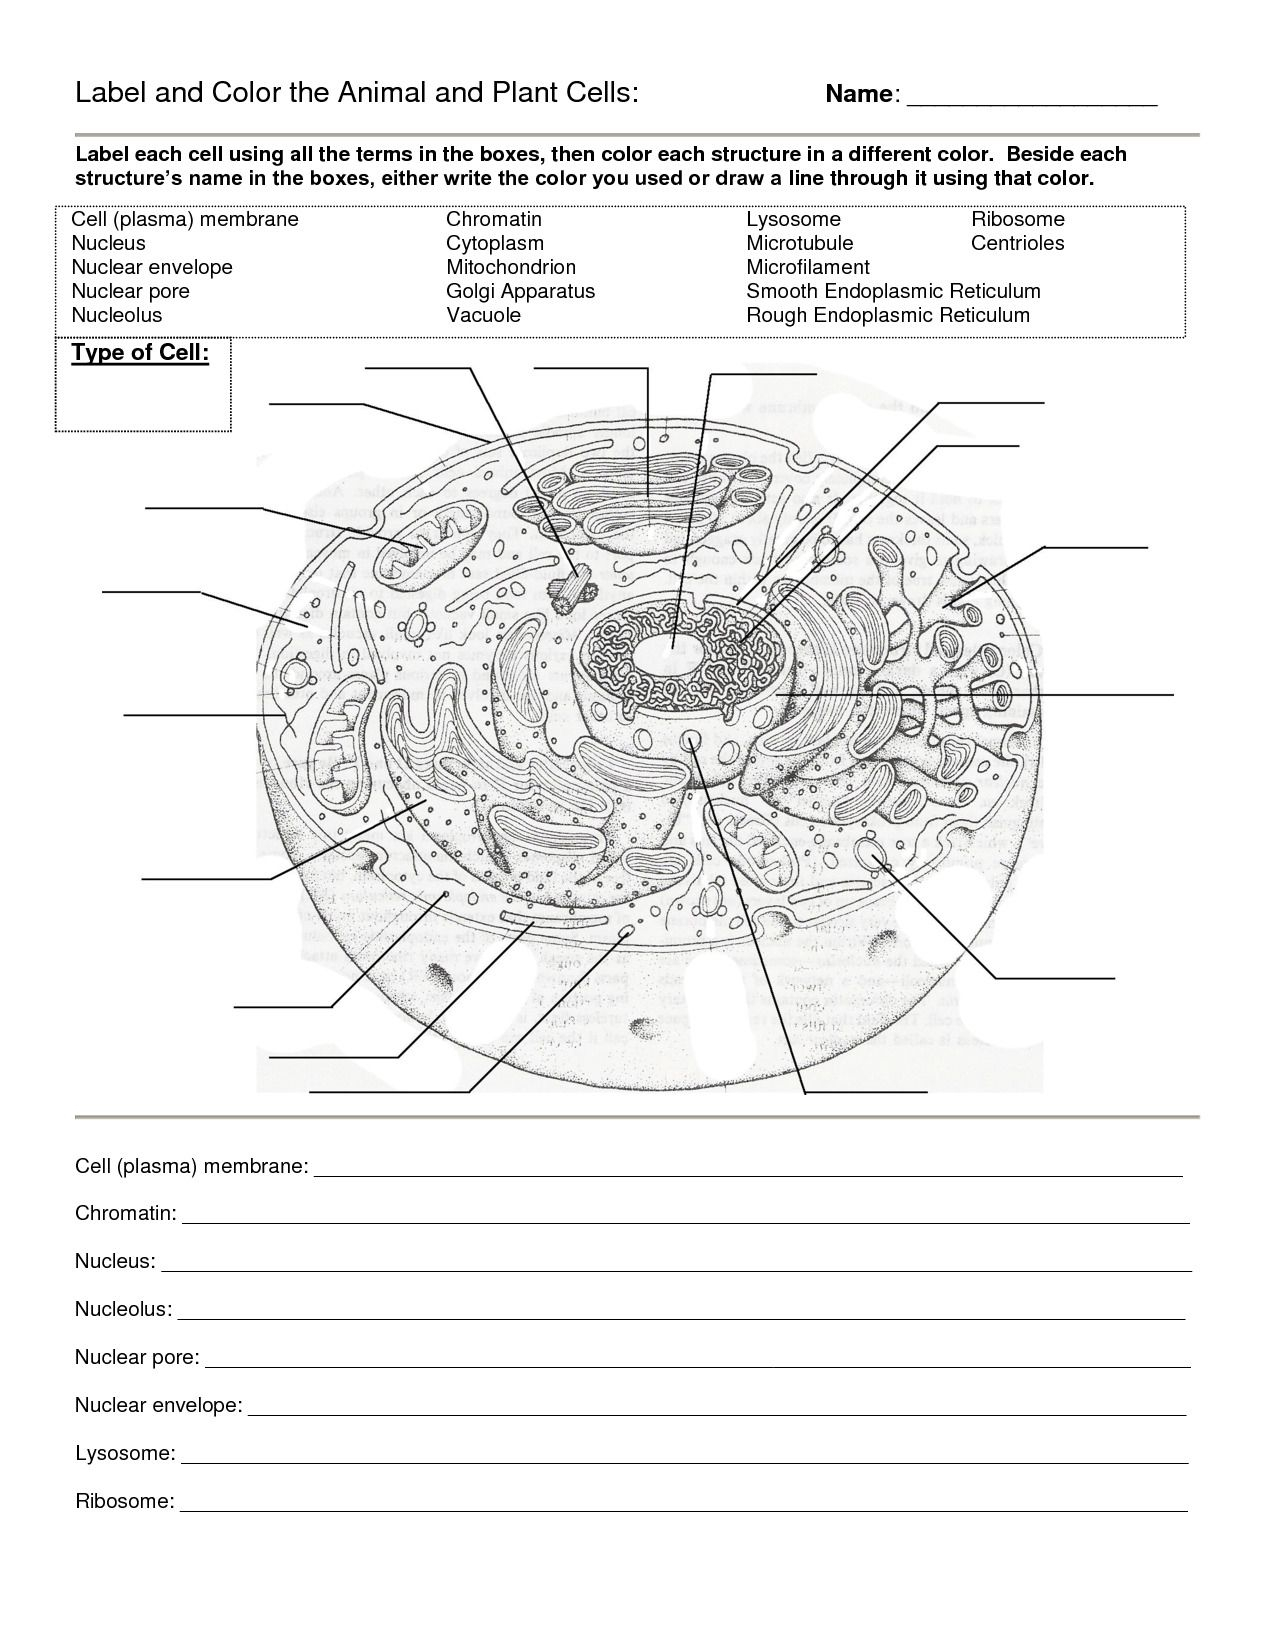 Prokaryotic And Eukaryotic Cells Worksheet Answers